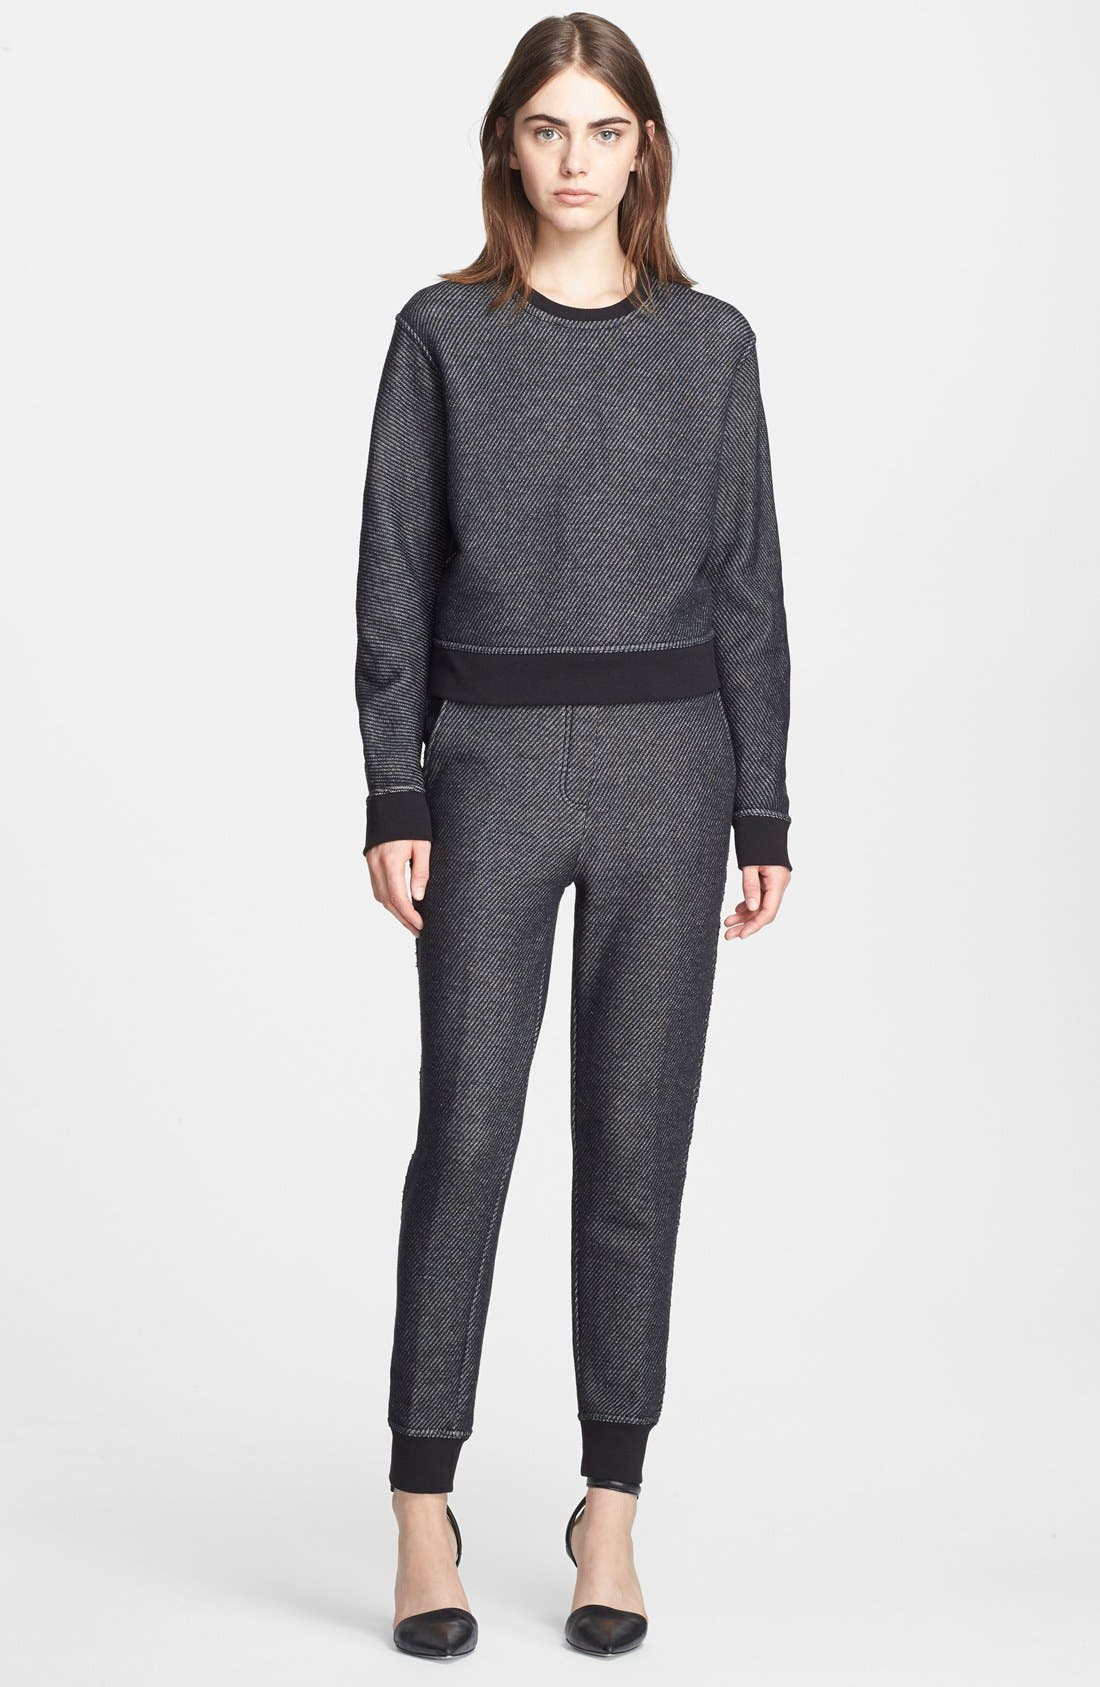 Alternate Image 1 Selected - T by Alexander Wang Twill & French Terry Crop Sweatshirt